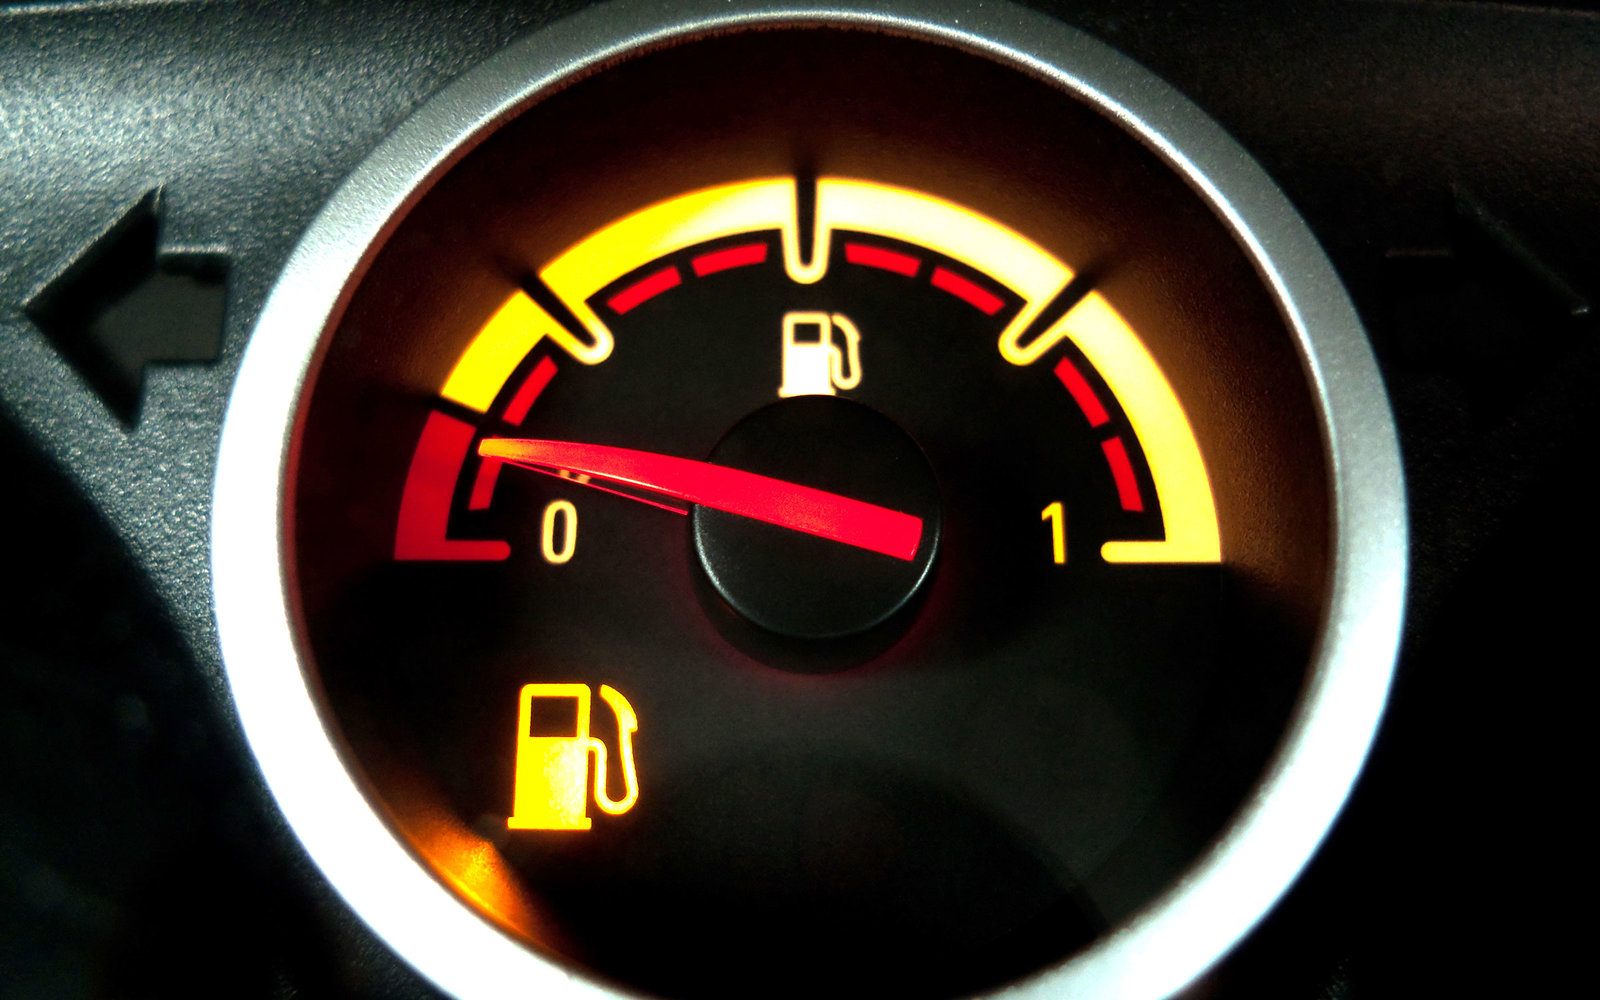 How Far You Can Drive When Your Empty Light Comes on & How Far You Can Drive With No Gas | Travel + Leisure